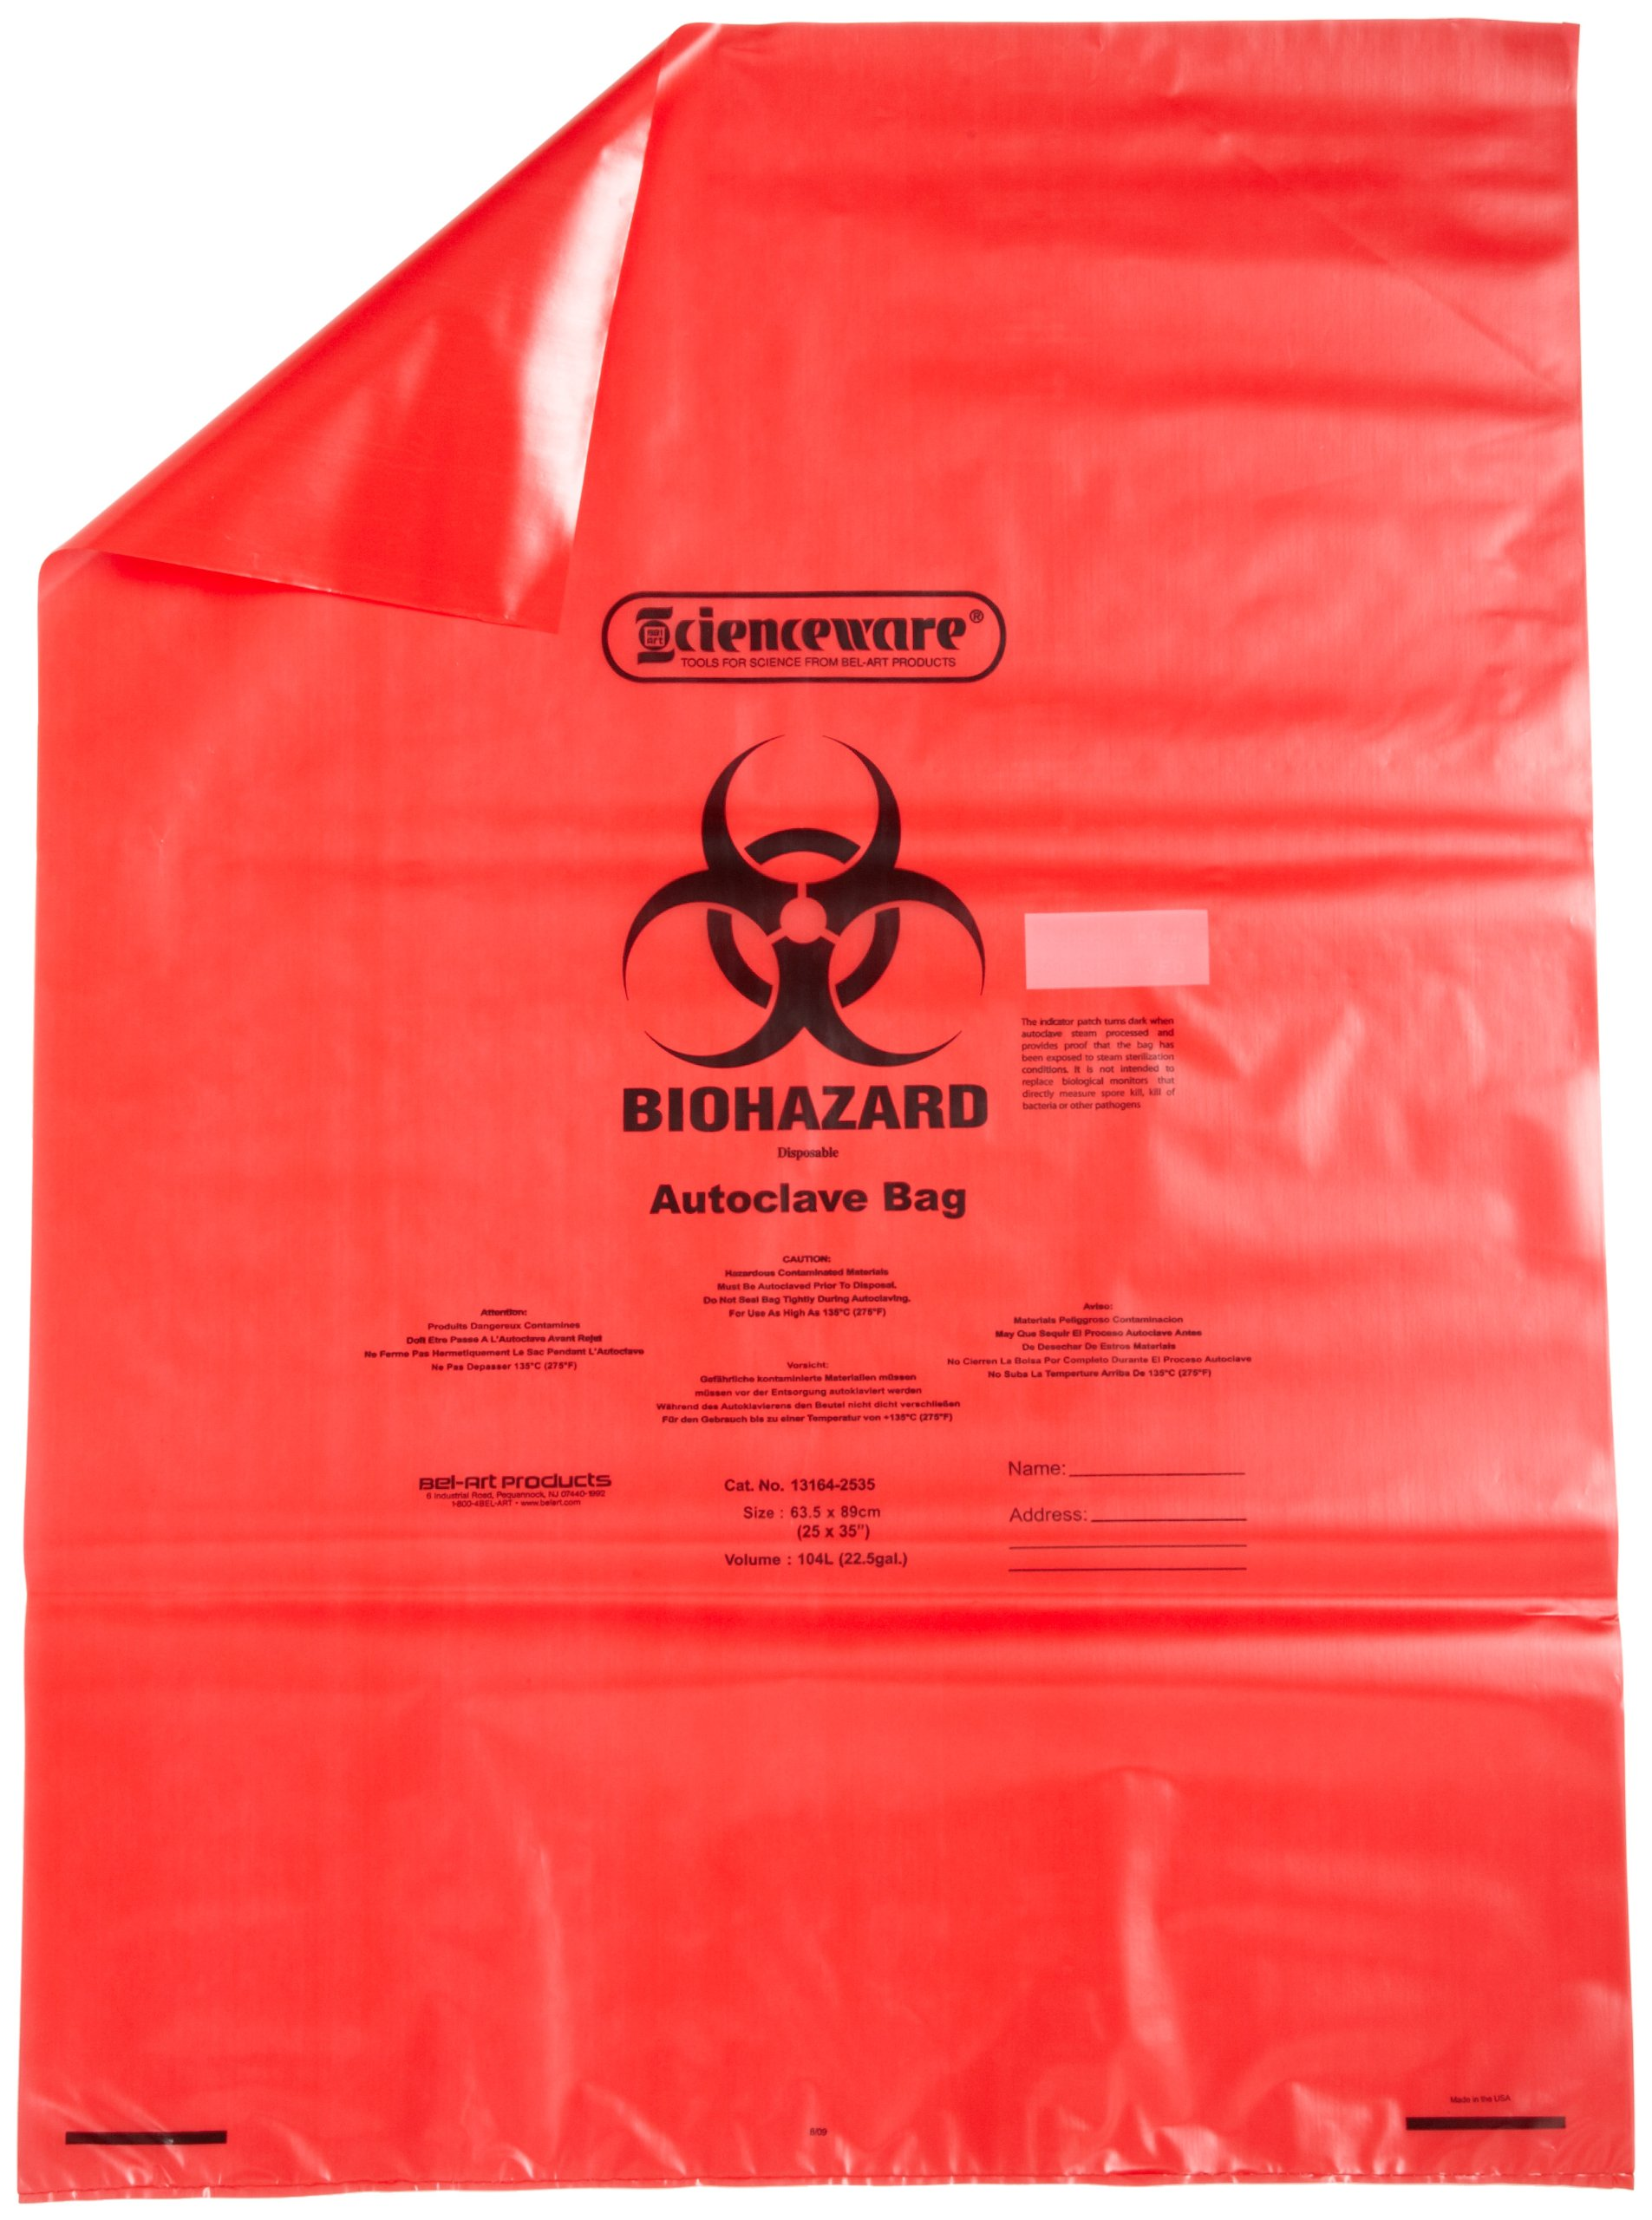 Bel-Art F13164-2535 Polypropylene 15-20 Gallon Red Biohazard Disposal Bags with Warning Label/Sterilization Indicator, 25W x 35 in. H, 1.5mil Thick (Pack of 200)